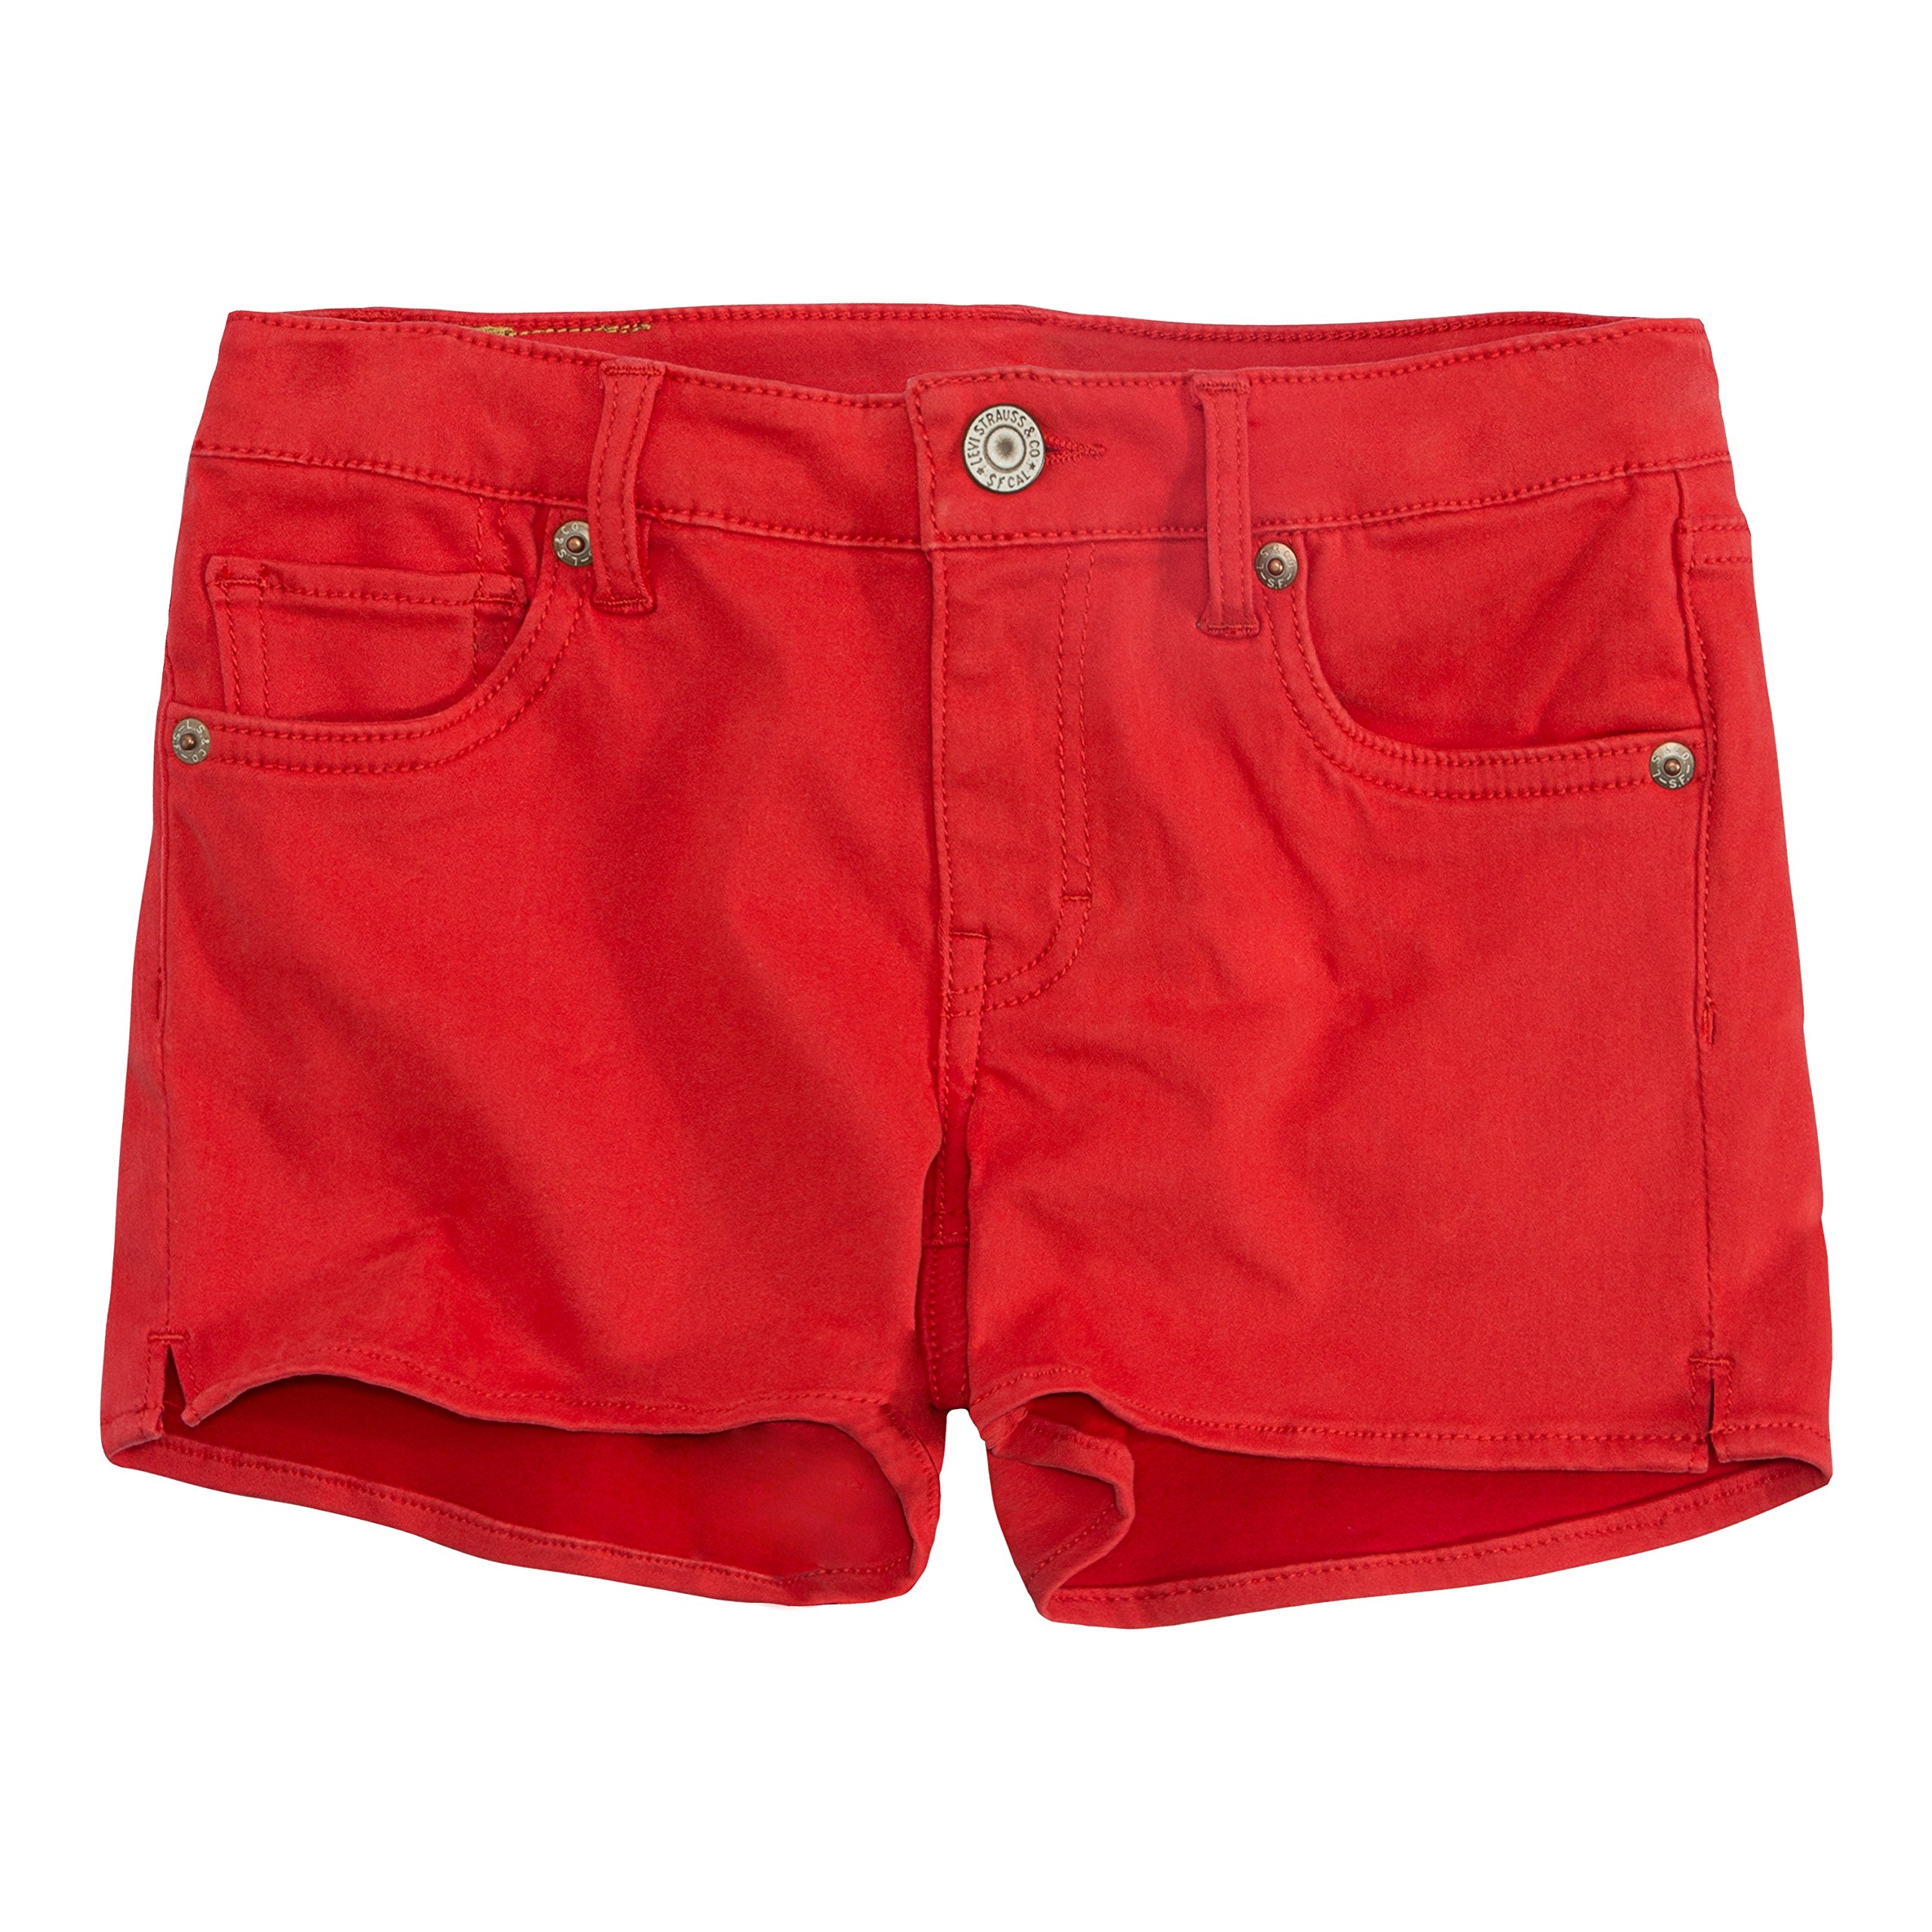 Levi's Girls' Little Soft Brushed Shorty Shorts, Poinsettia, 6